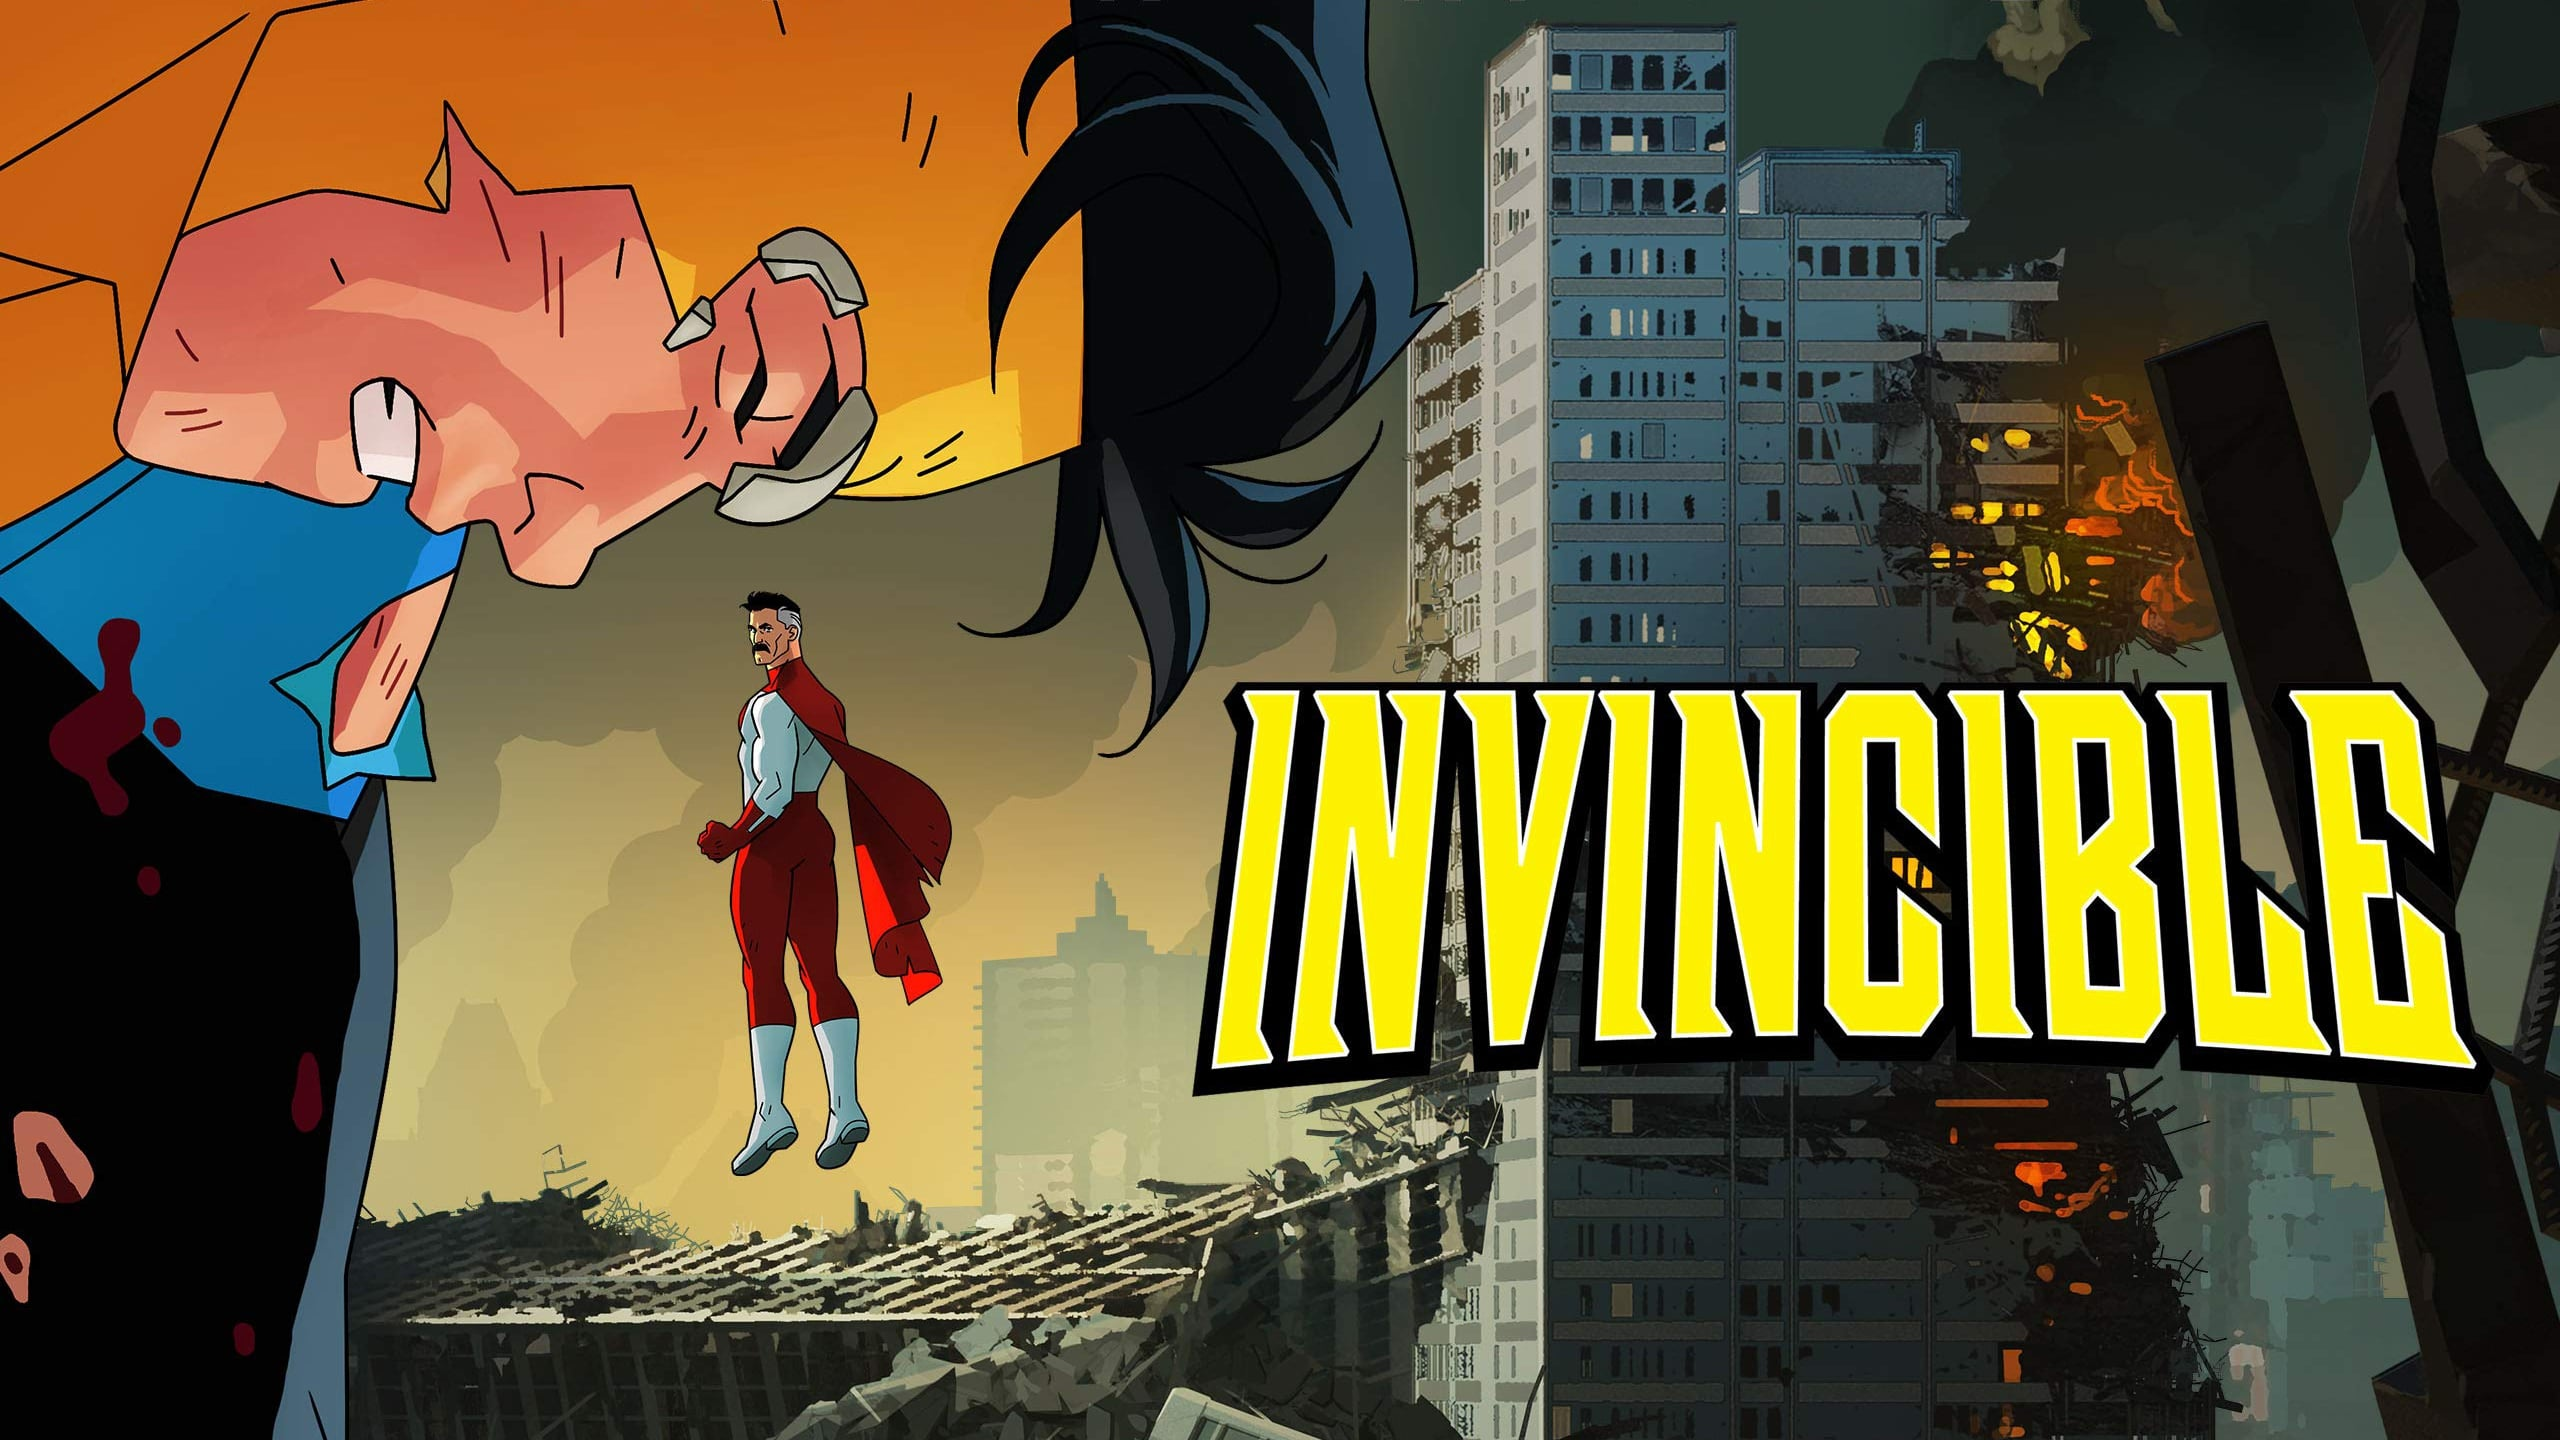 Invincible Season 1